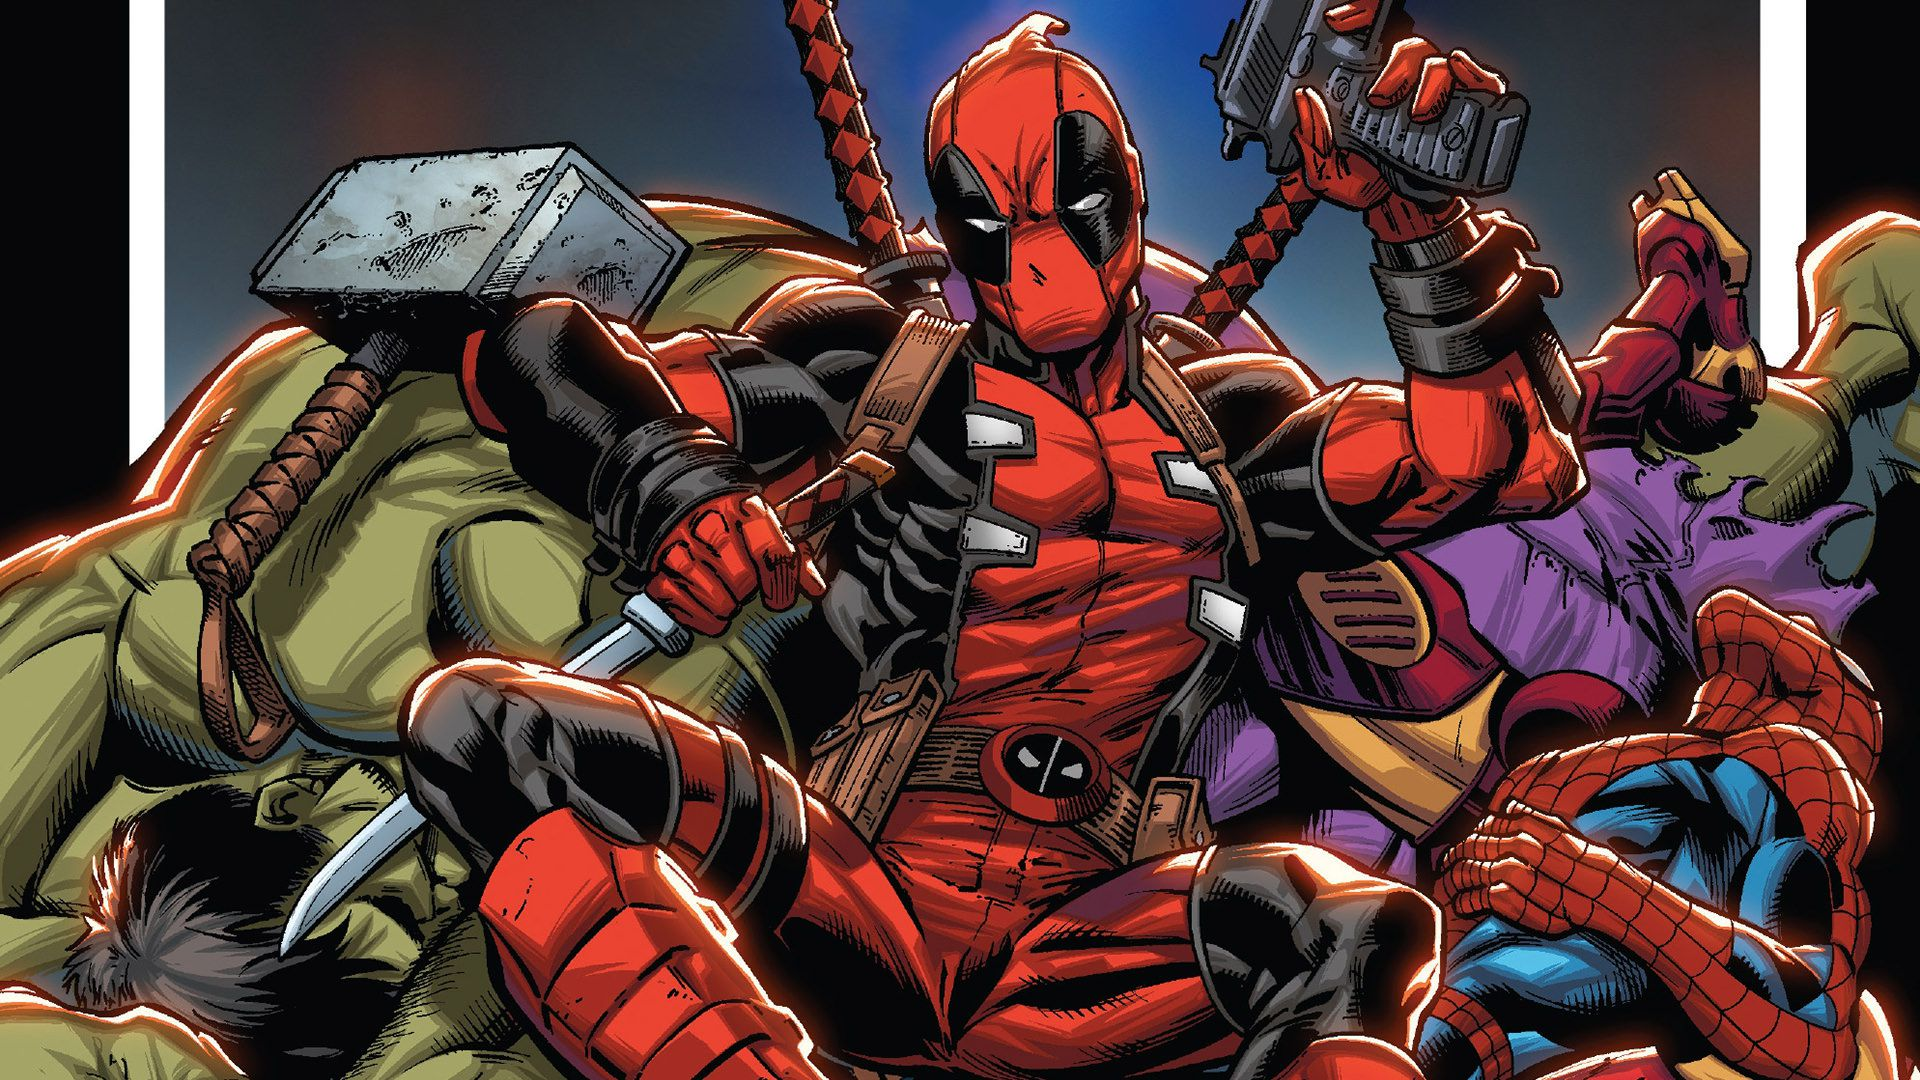 Deadpool Rob Liefeld And Other Historical Writers Return For The Mercenary S 30th Anniversary Anime Sweet